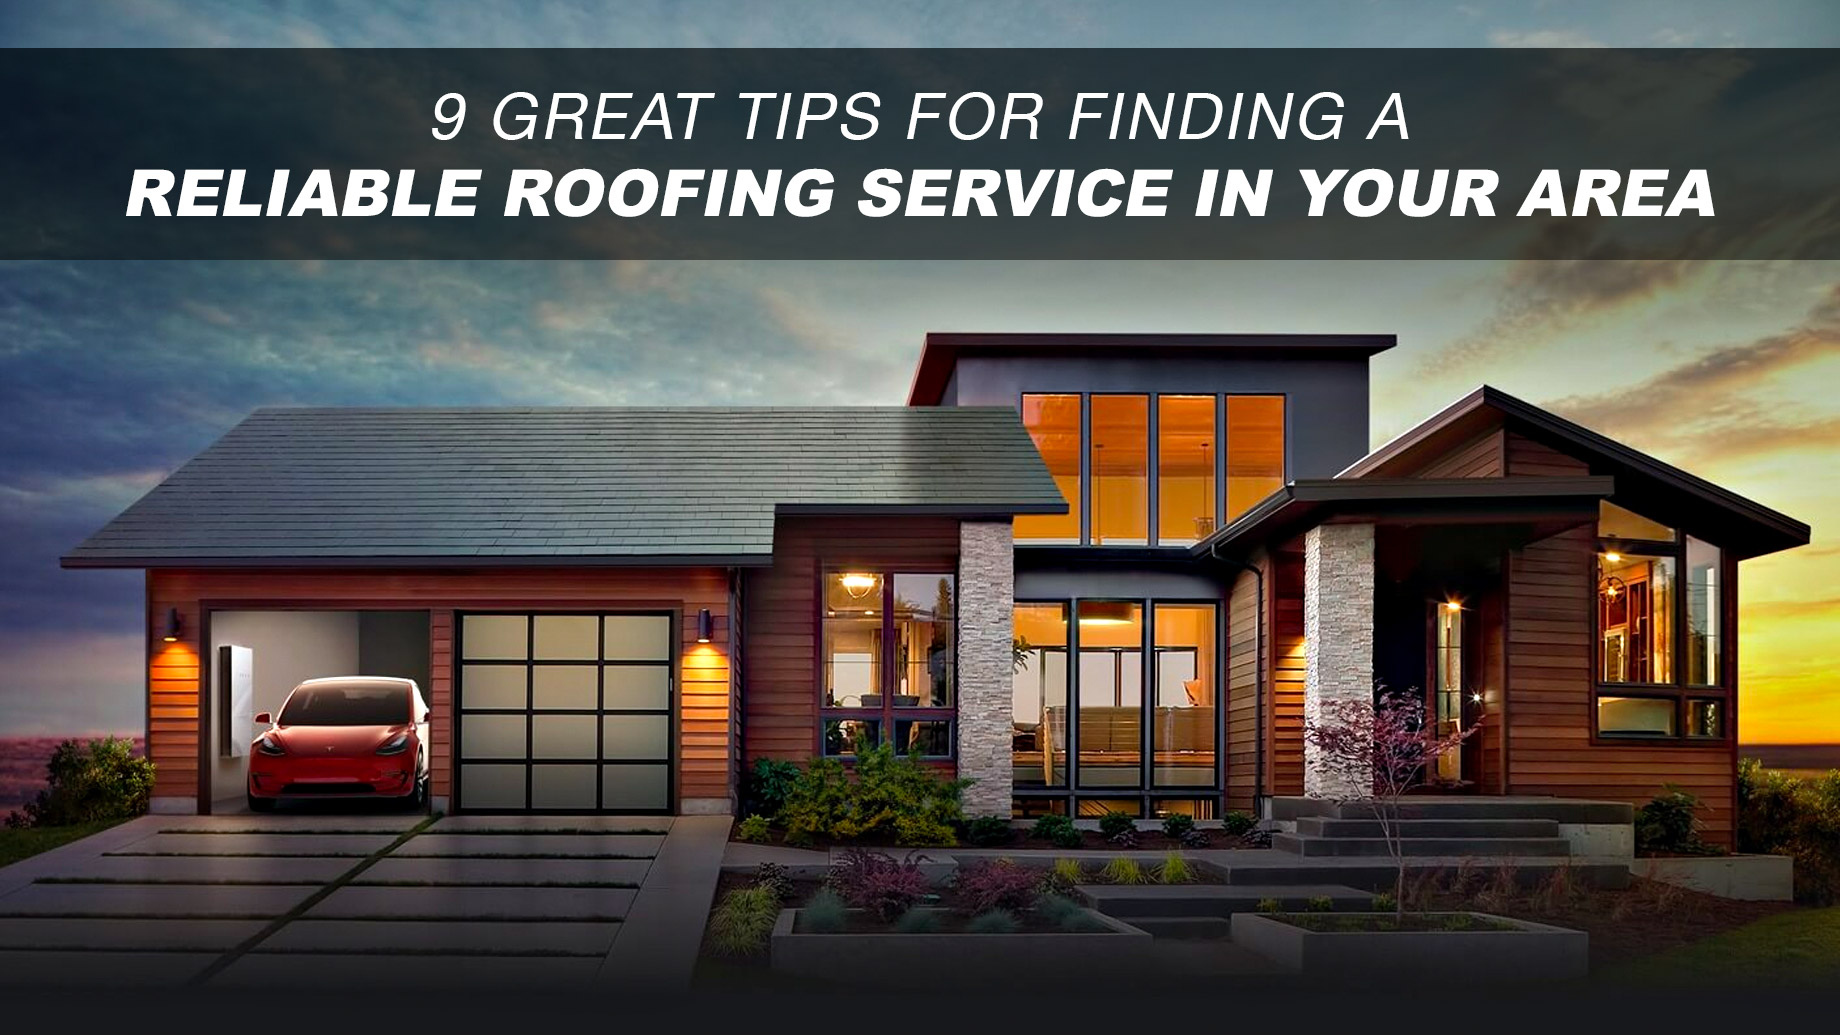 9 Great Tips For Finding A Reliable Roofing Service In Your Area